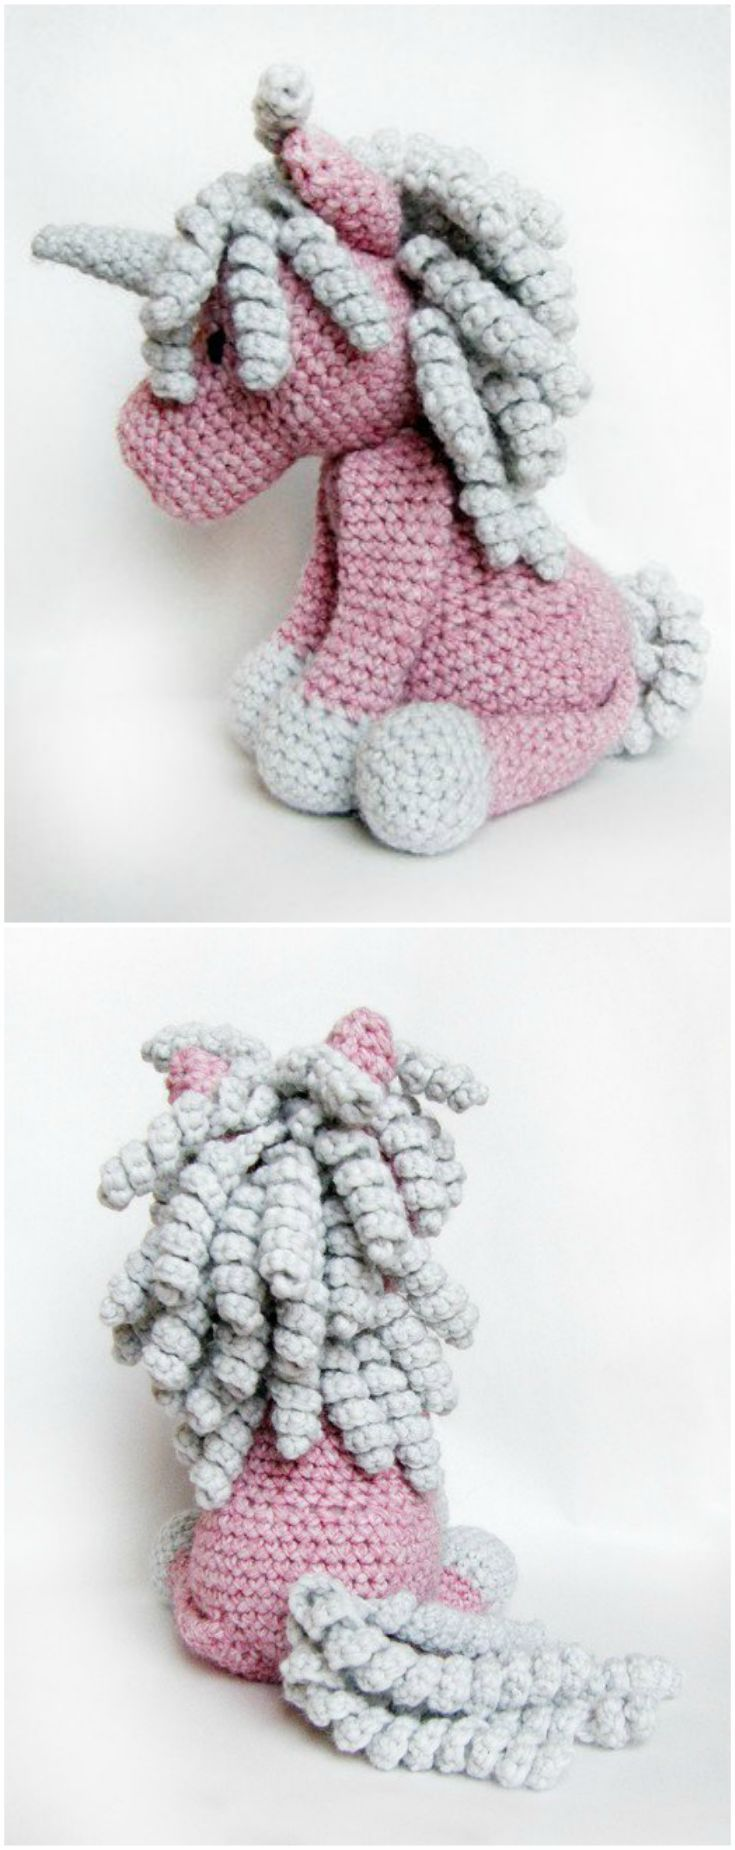 Häkelanleitung für ein kuscheliges Einhorn mit Ringellocken, Amigurumi Häkeltiere / crochet ebook for a magic unicorn, amigurumi made by Froschprinzessin via DaWanda.com